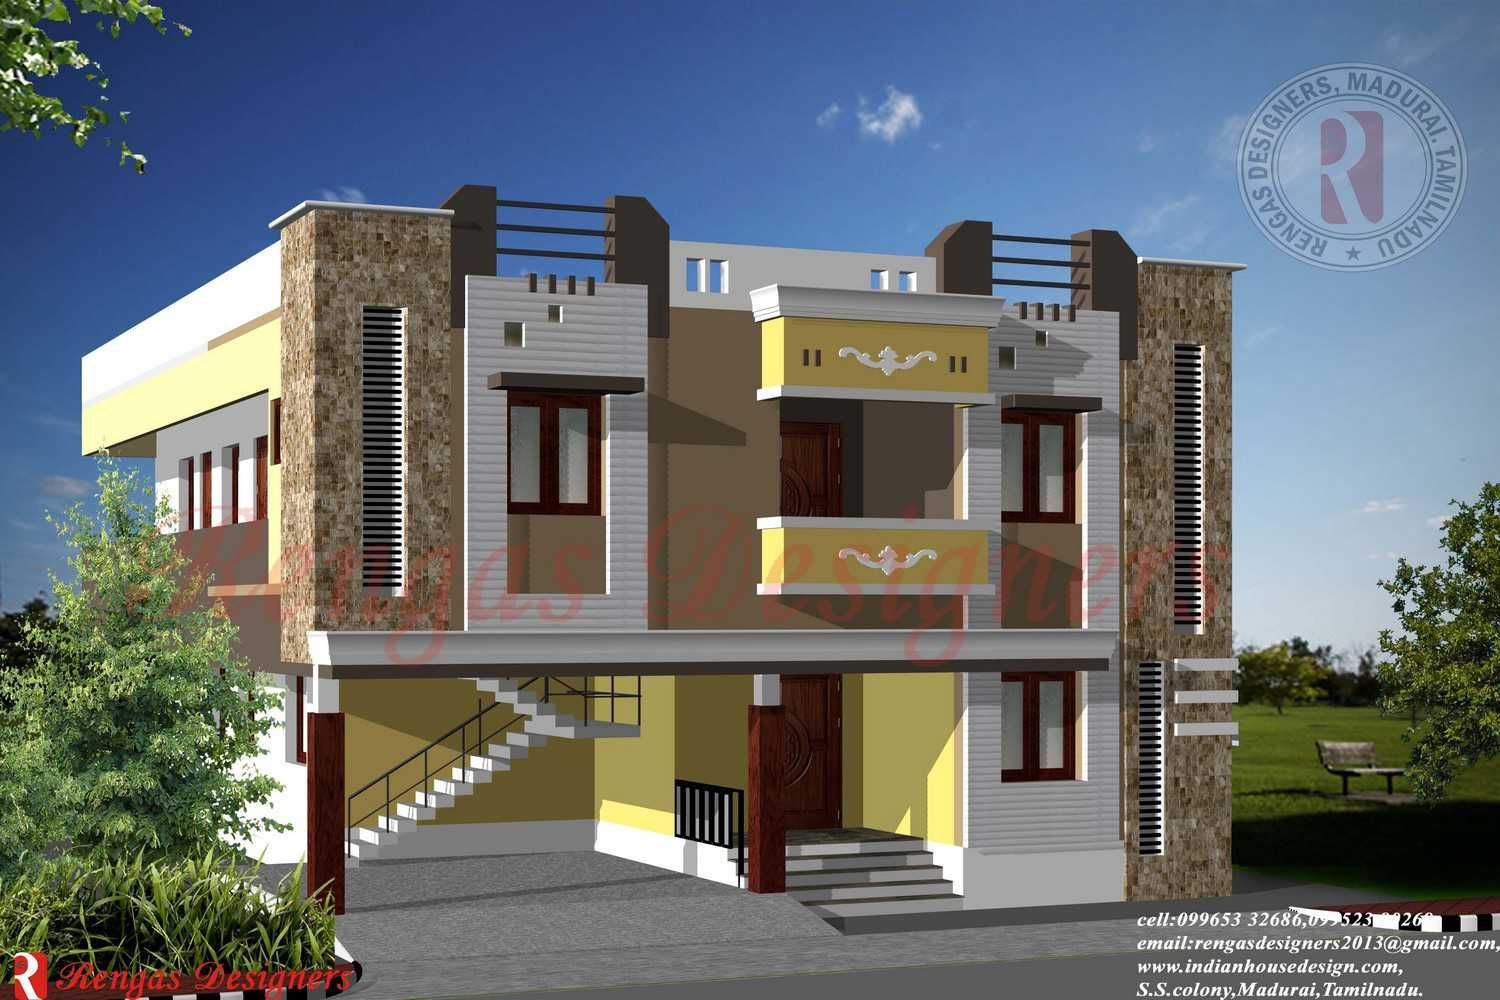 Parapet wall designs google search residence for Window design for house in india